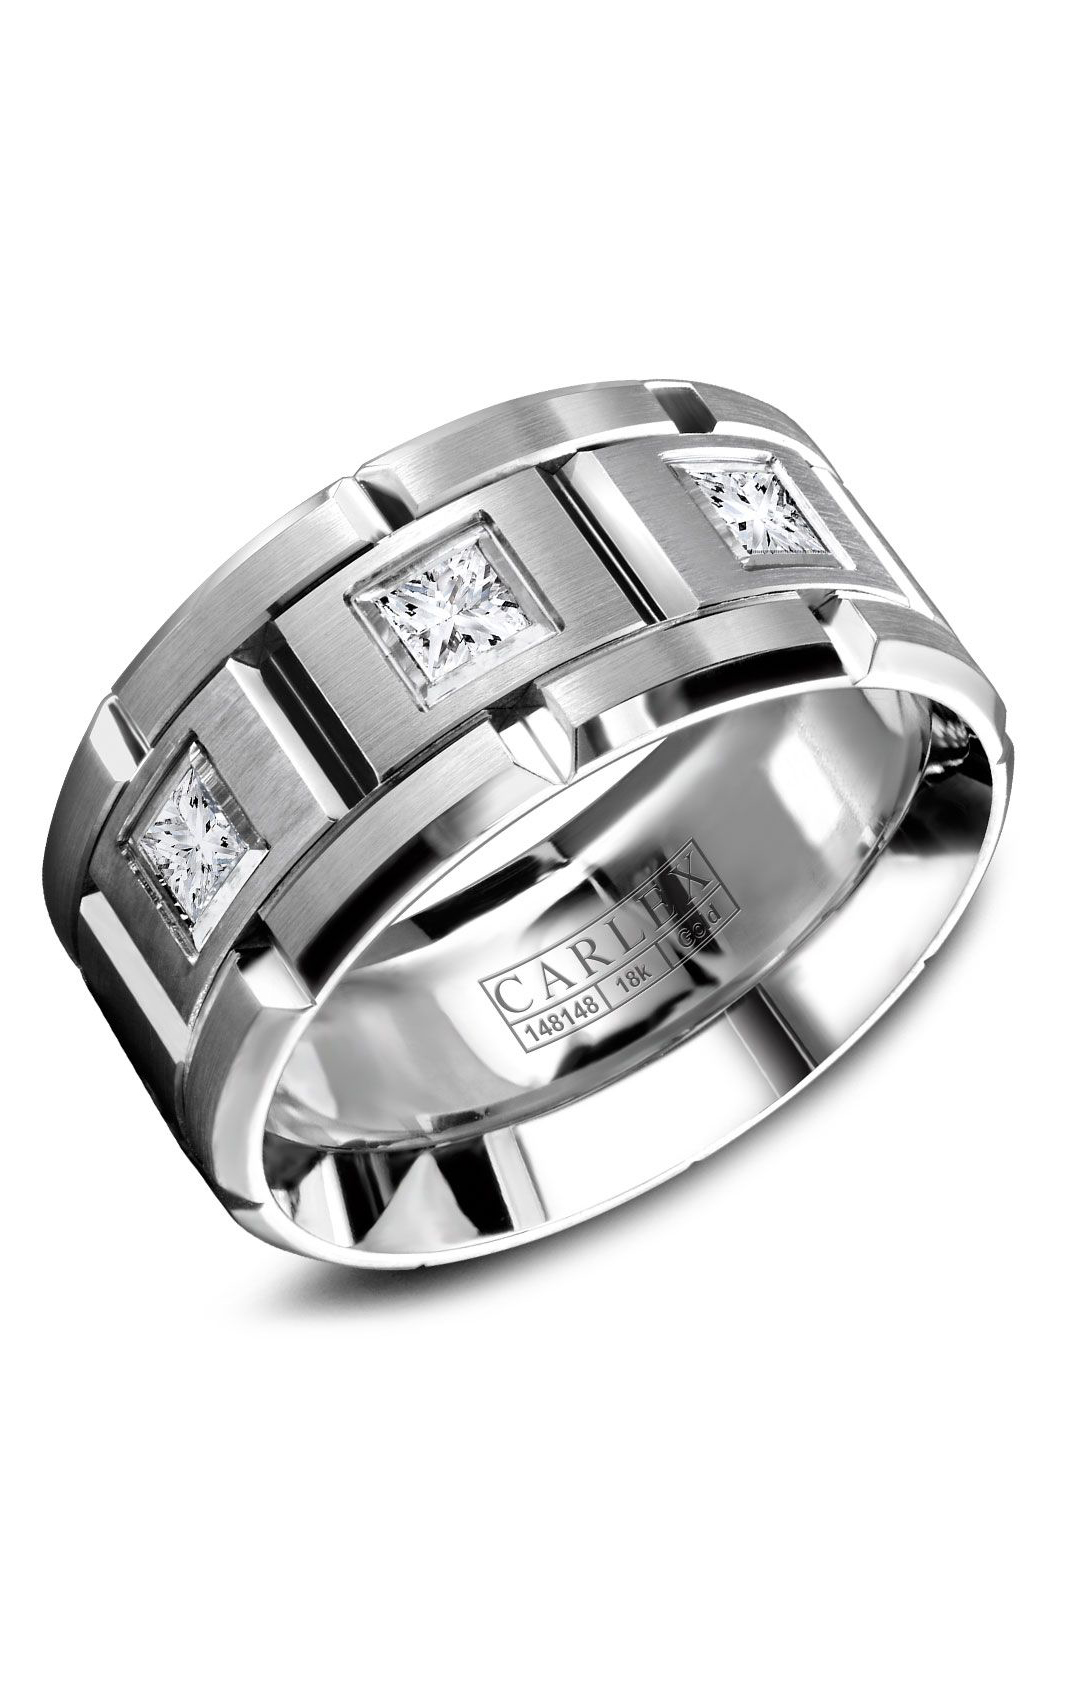 Carlex G1 Men's Wedding Band WB-9474 product image